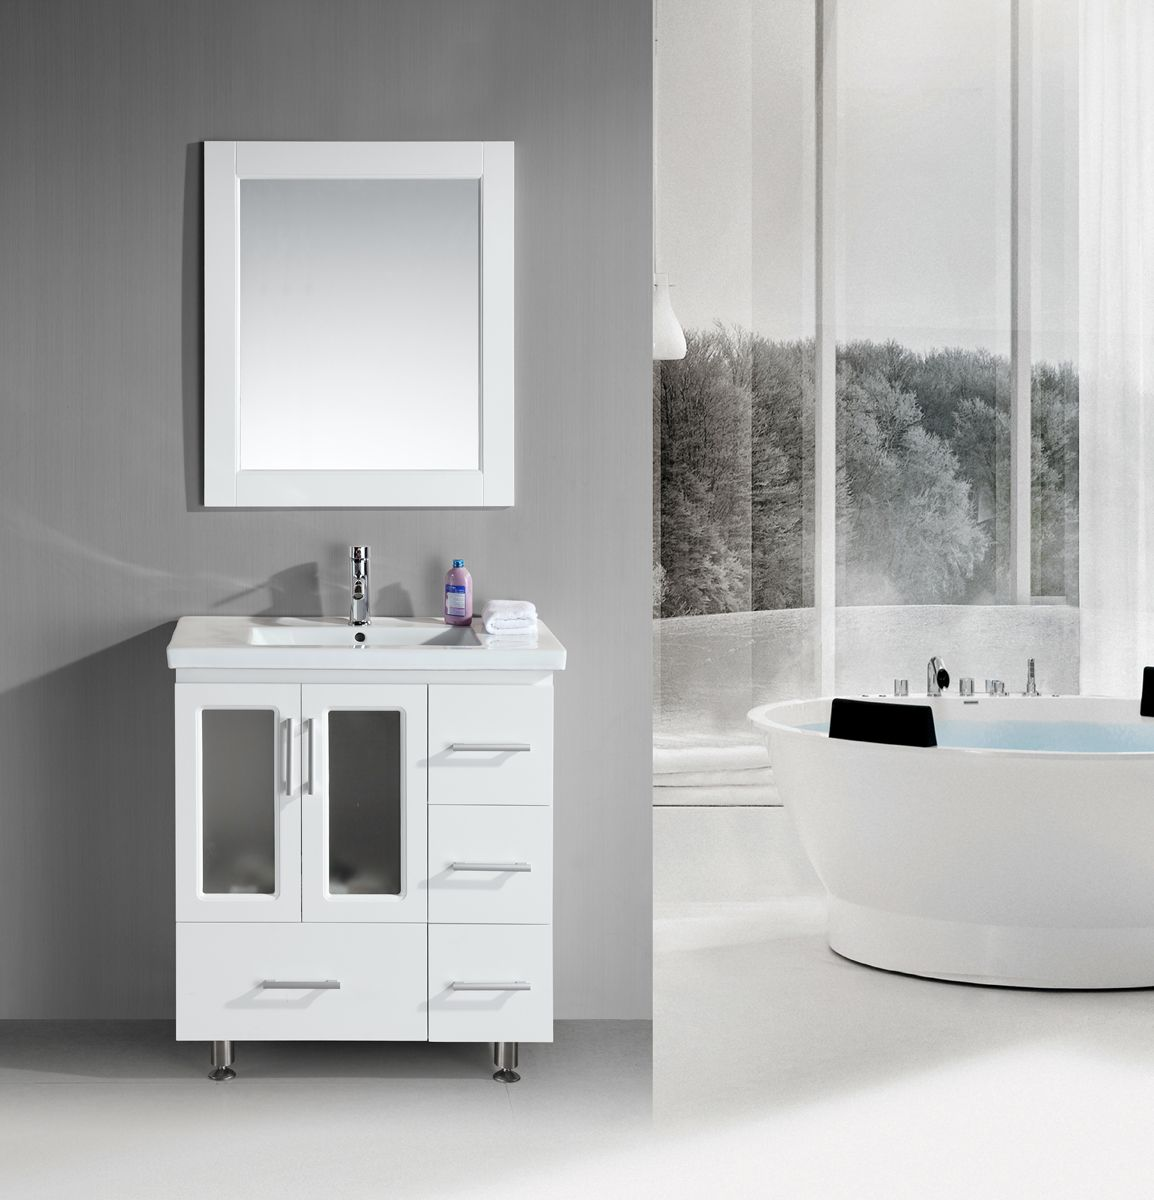 32 Inch Contemporary White Bathroom Vanity Set With Porcelain Sink Top.  This White Bathroom Vanity